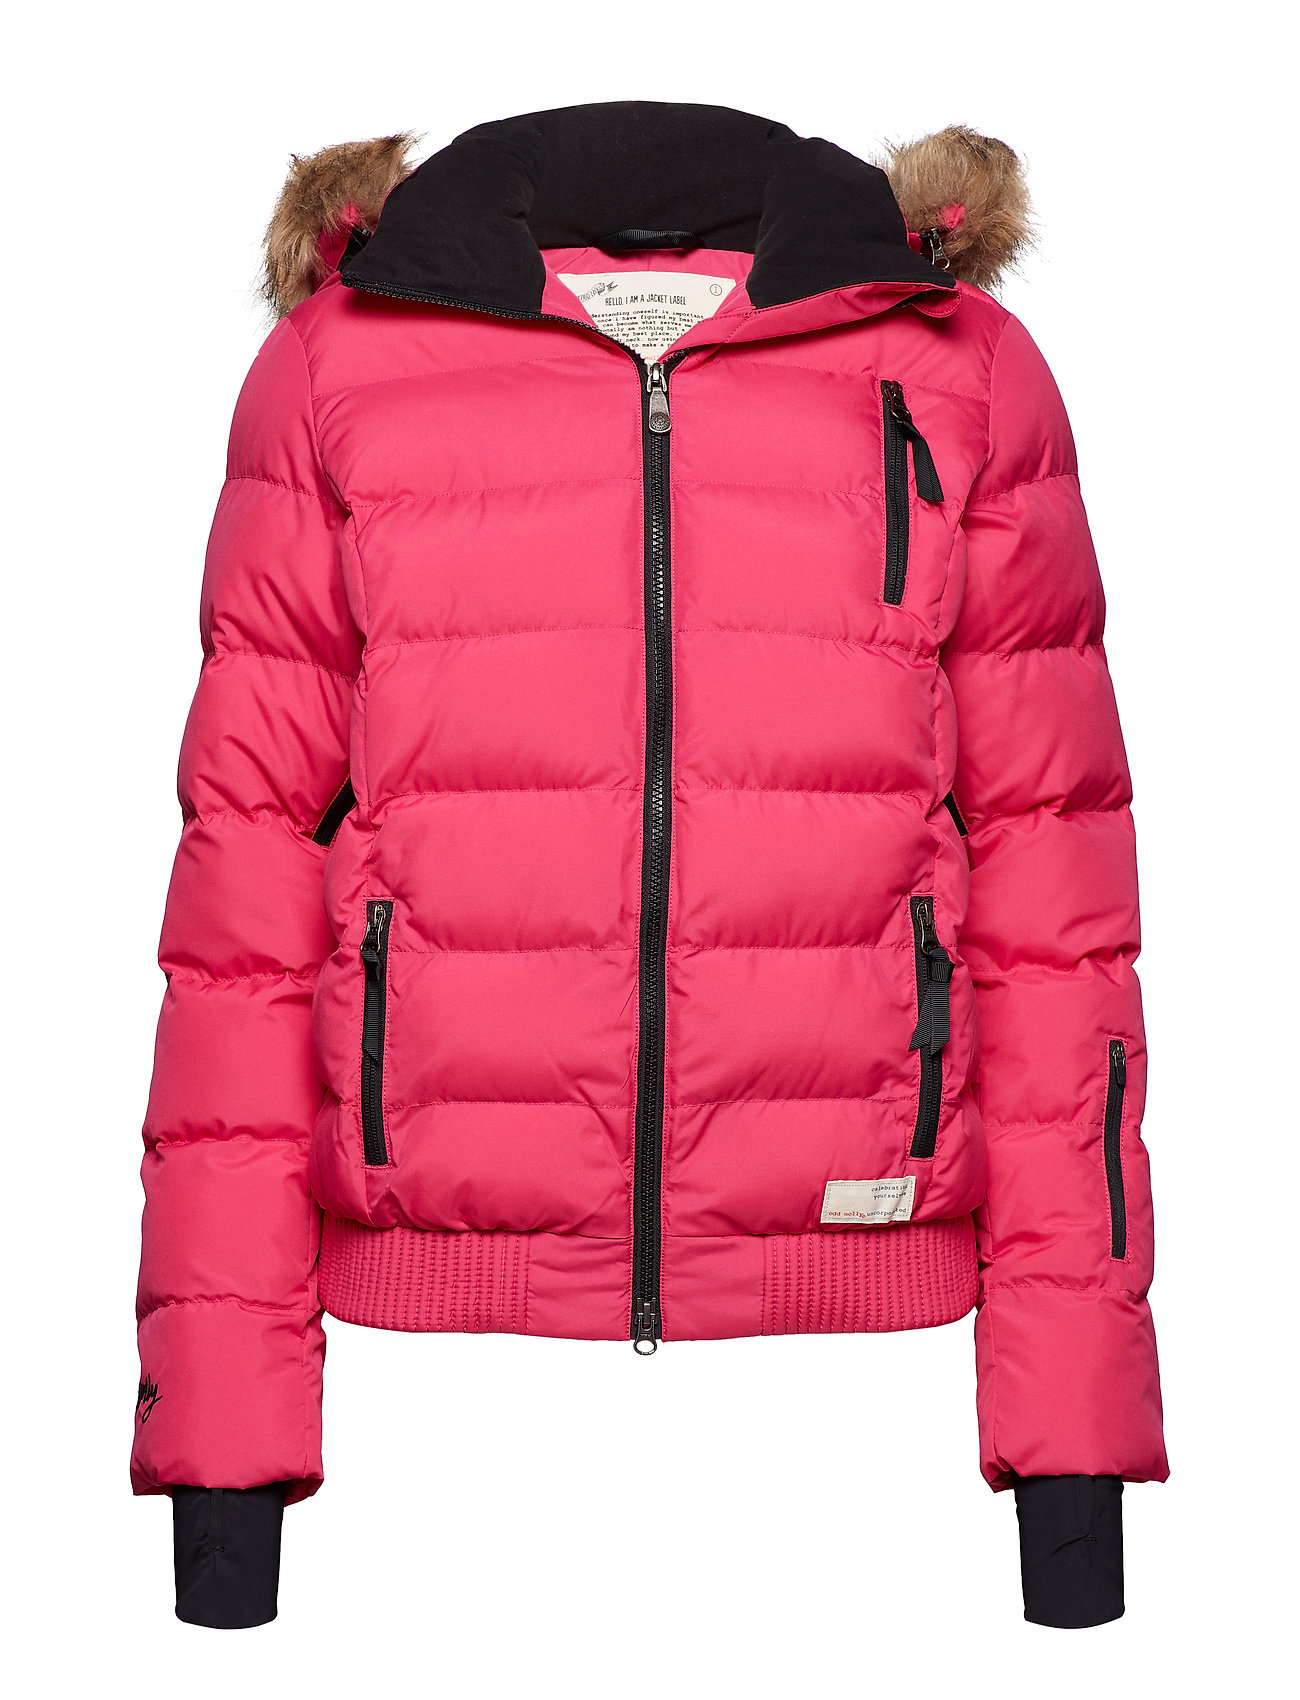 ODD MOLLY ACTIVE WEAR glorious jacket - HOT PINK